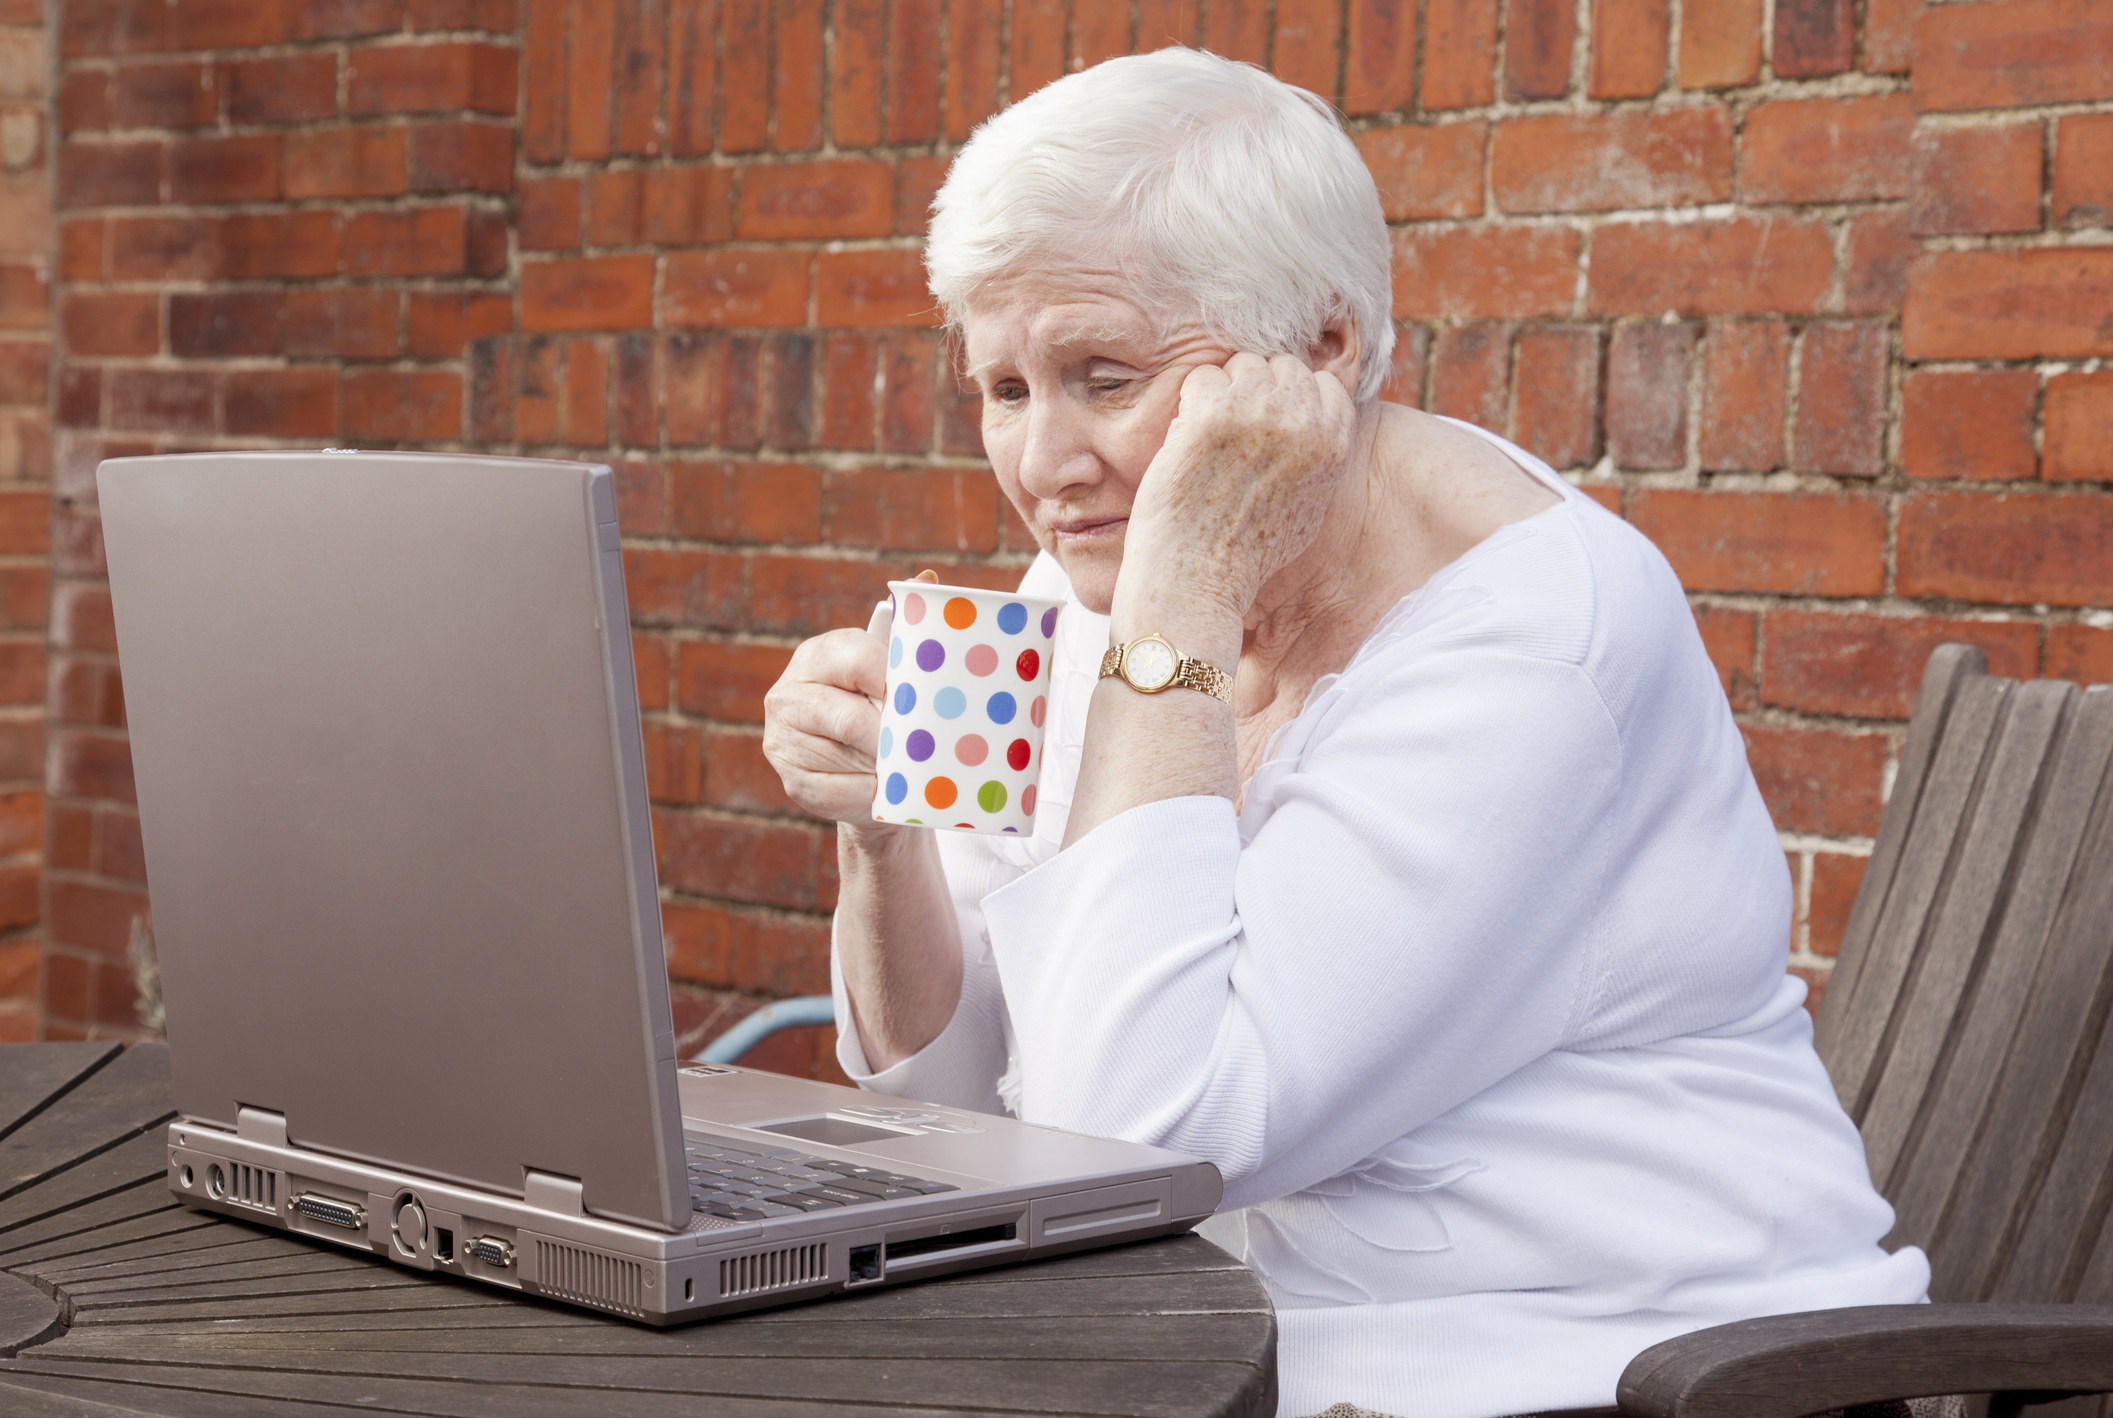 An old woman at a computer looking sad